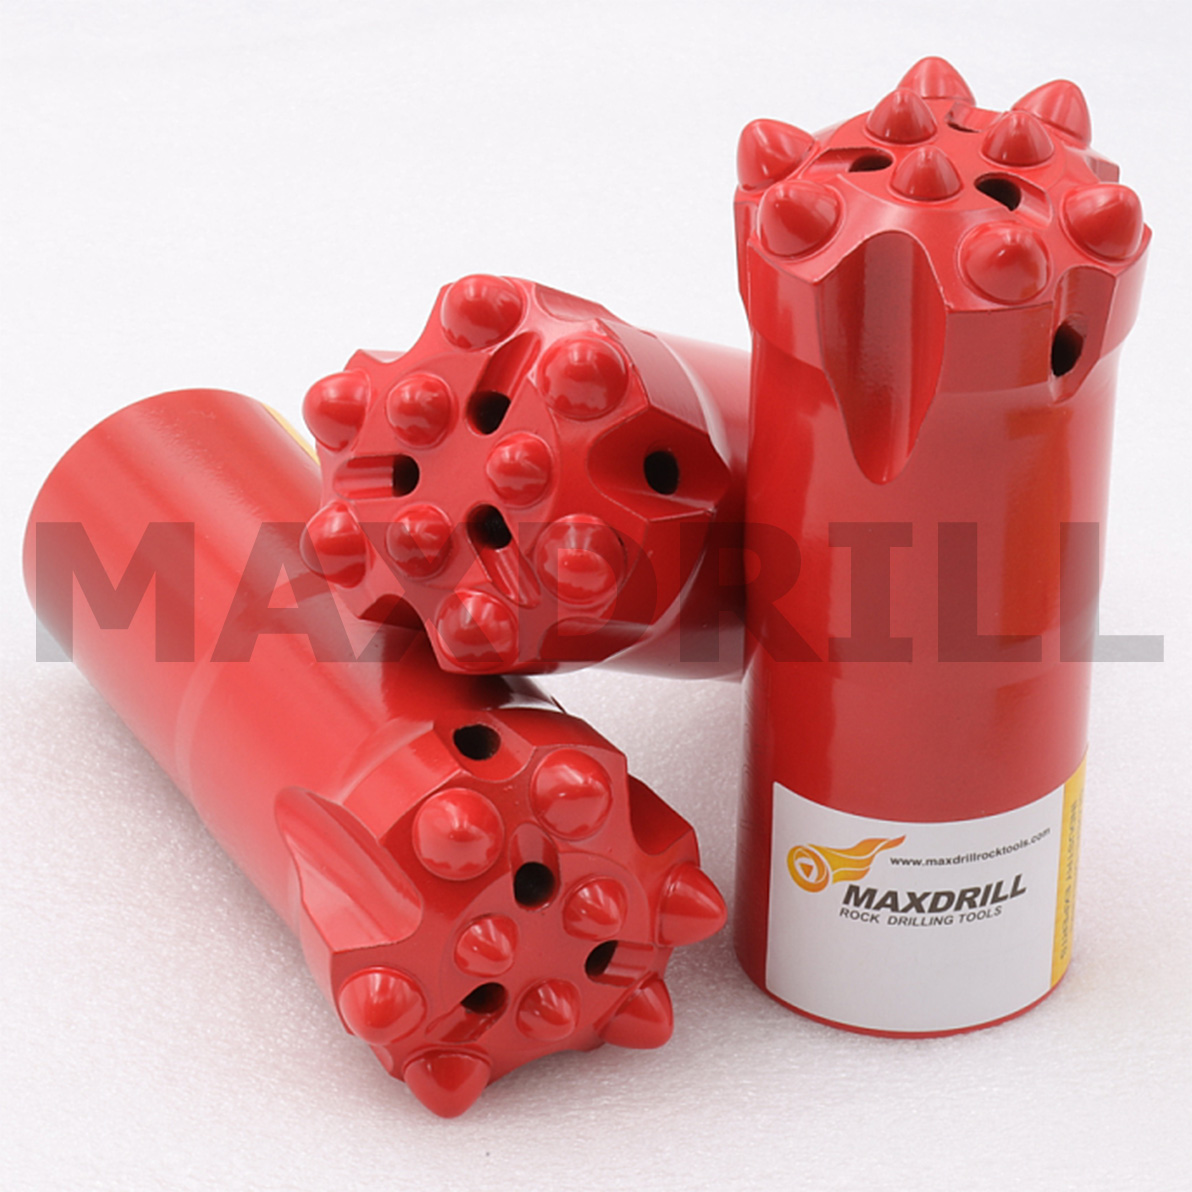 MAXDRILL R32 45mm Button bit